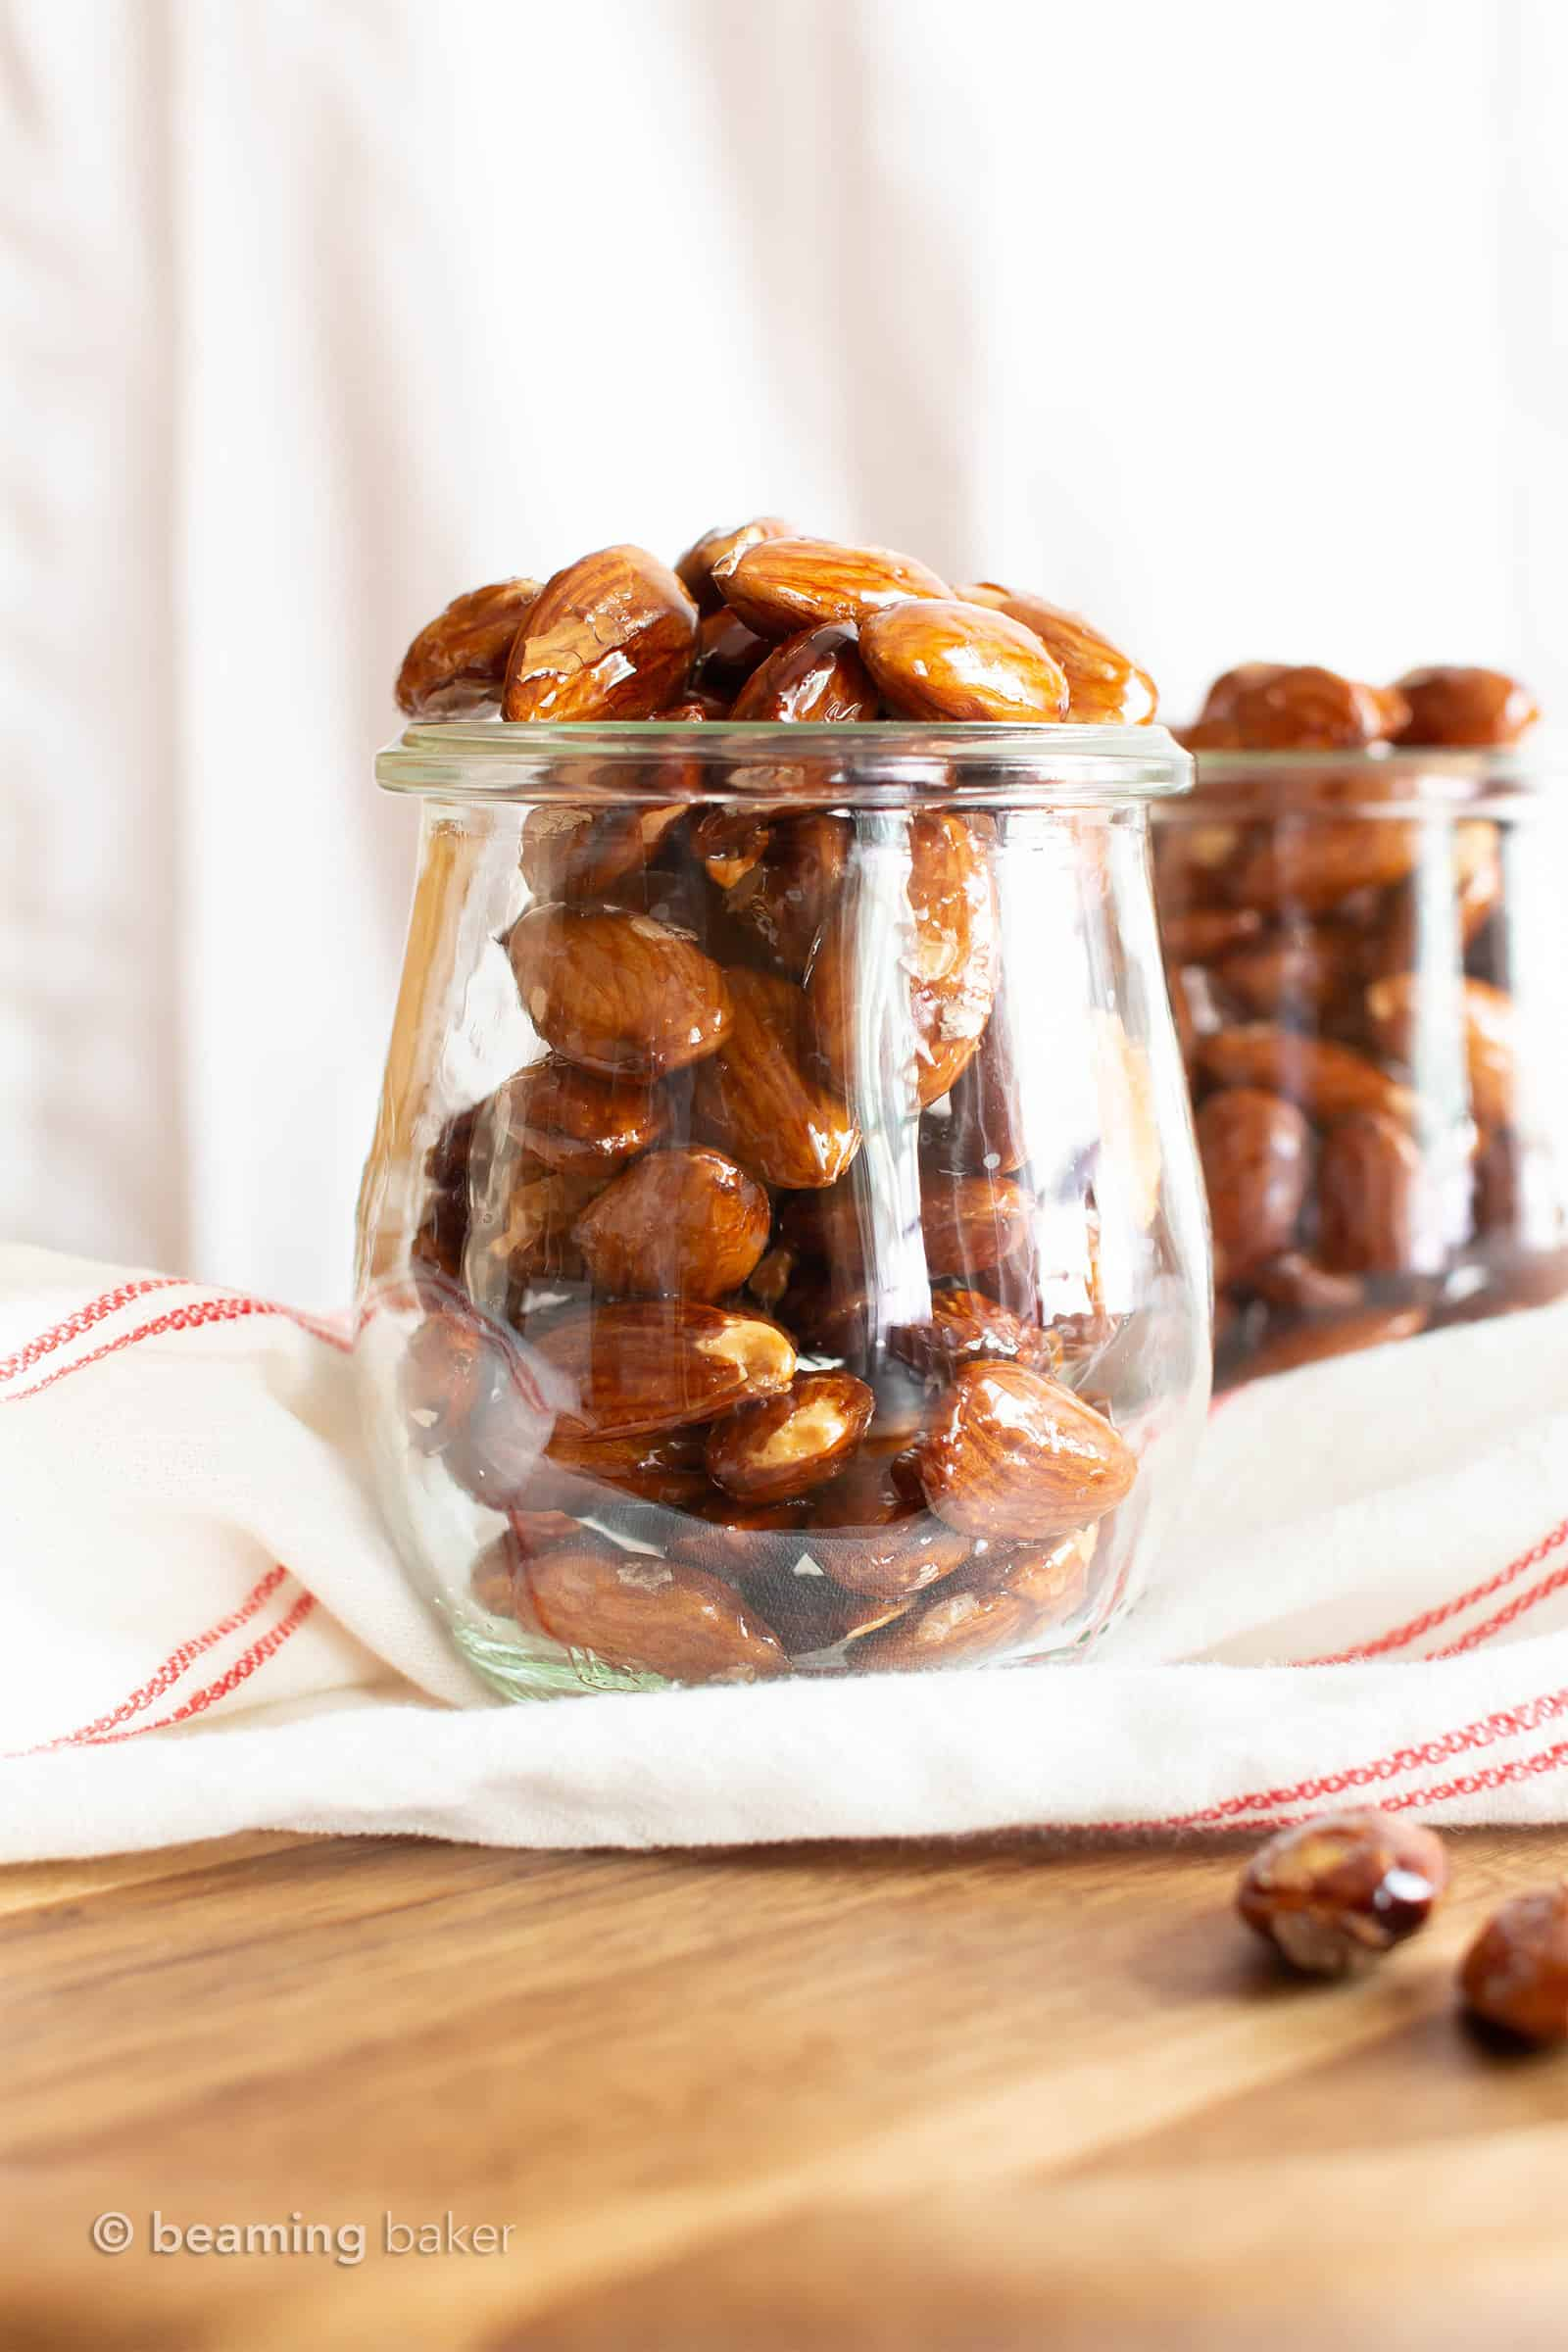 Paleo Candied Almonds: 5-minute stovetop EASY candied almonds recipe! Learn how to make the BEST vegan candied almonds—sweet, healthy & gluten free! #Almonds #Paleo #Vegan #Healthy #Christmas   Recipe at BeamingBaker.com